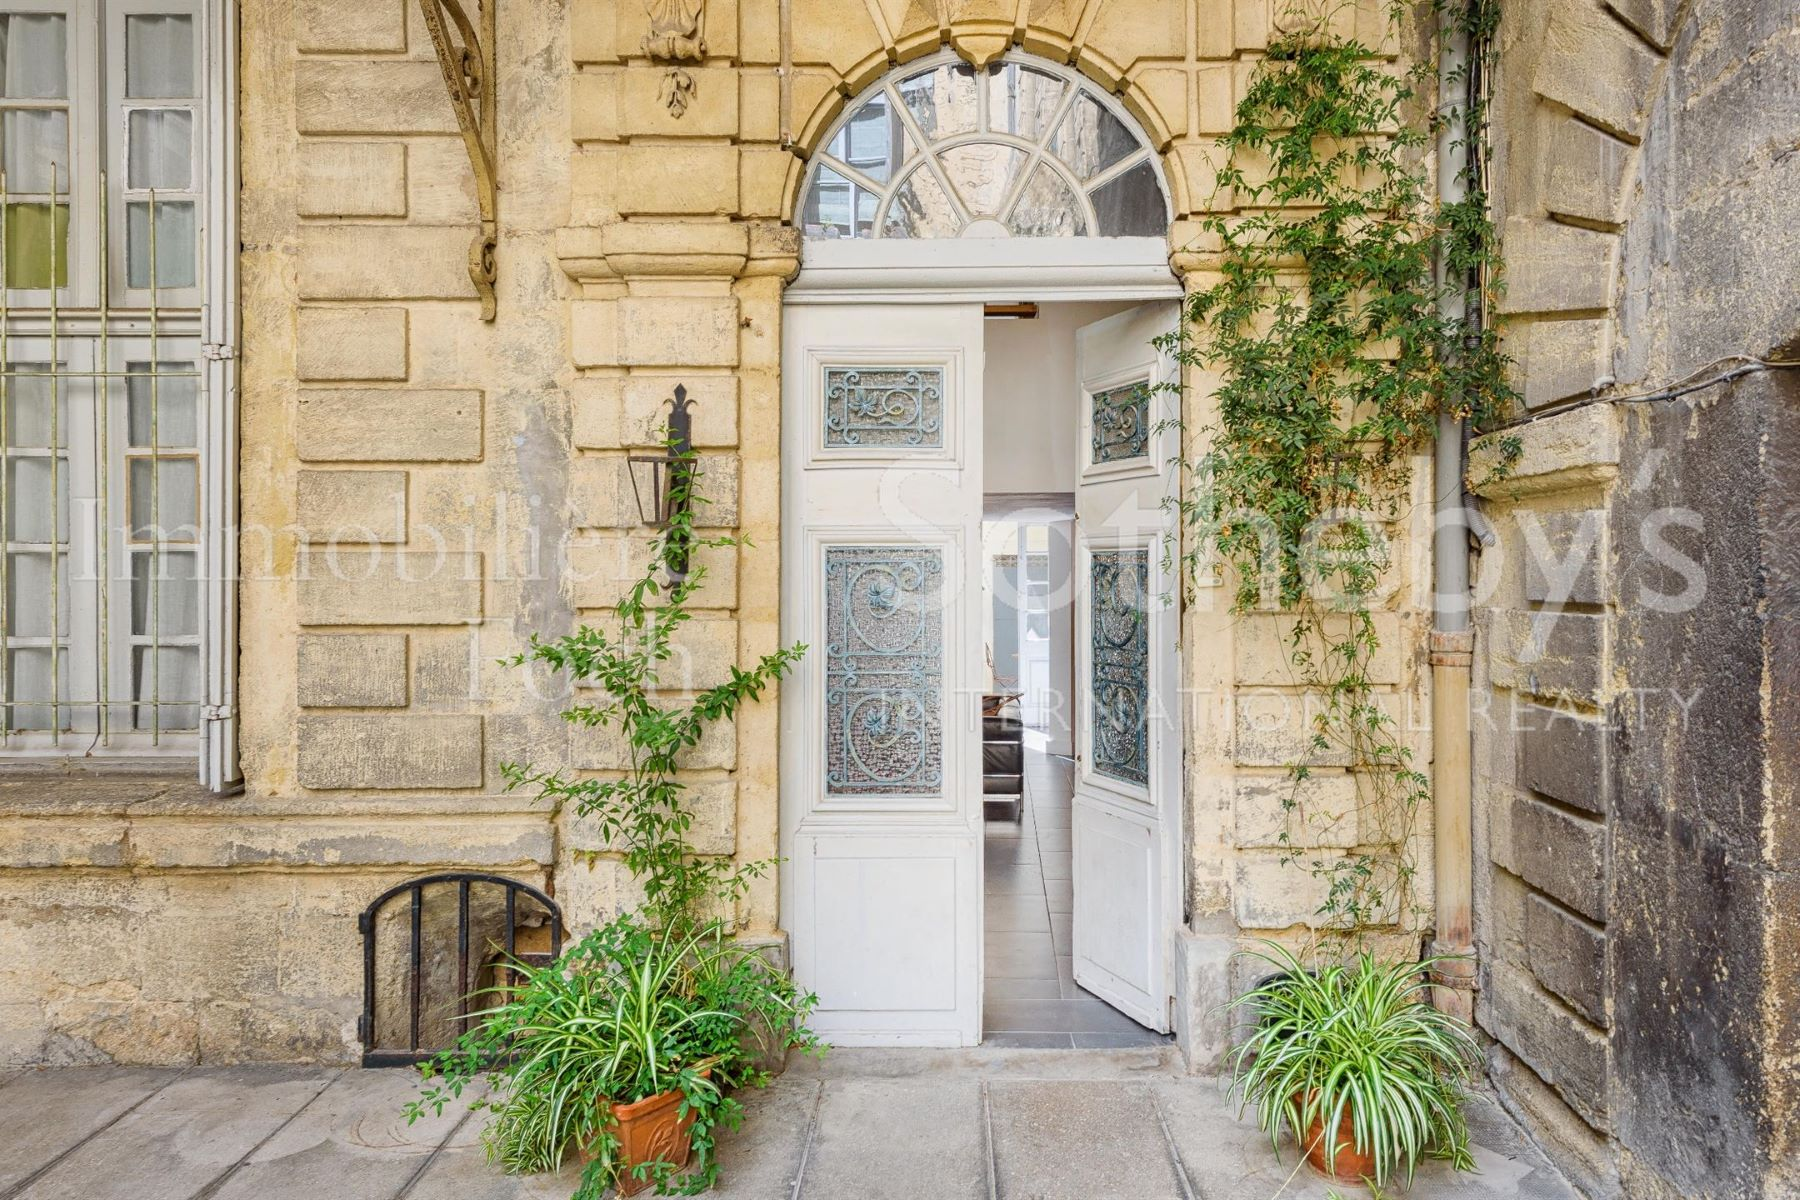 Apartment for Sale at Montpelier Historical Center - Amazing flat with courtyard Montpellier, Languedoc-Roussillon, 34000 France